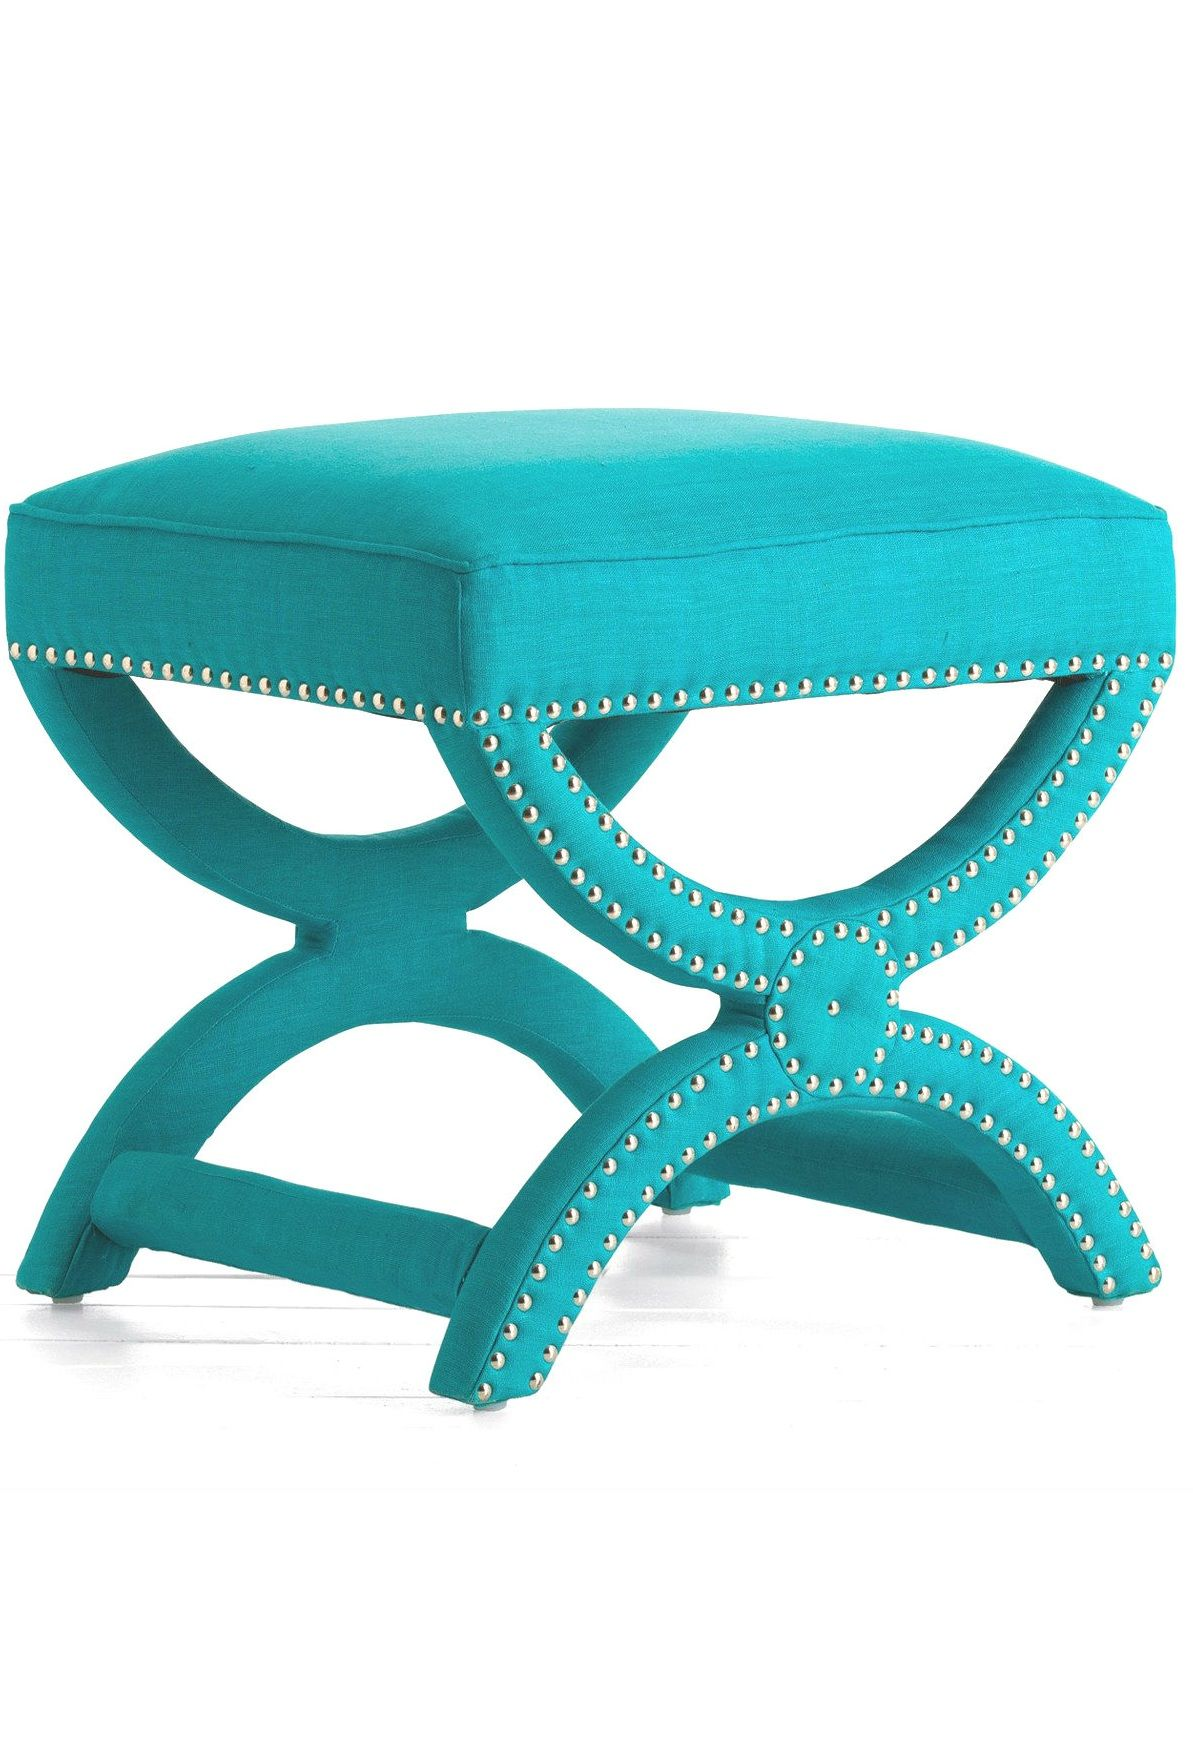 turquoise accessories turquoise decor turquoise home decor turquoise home